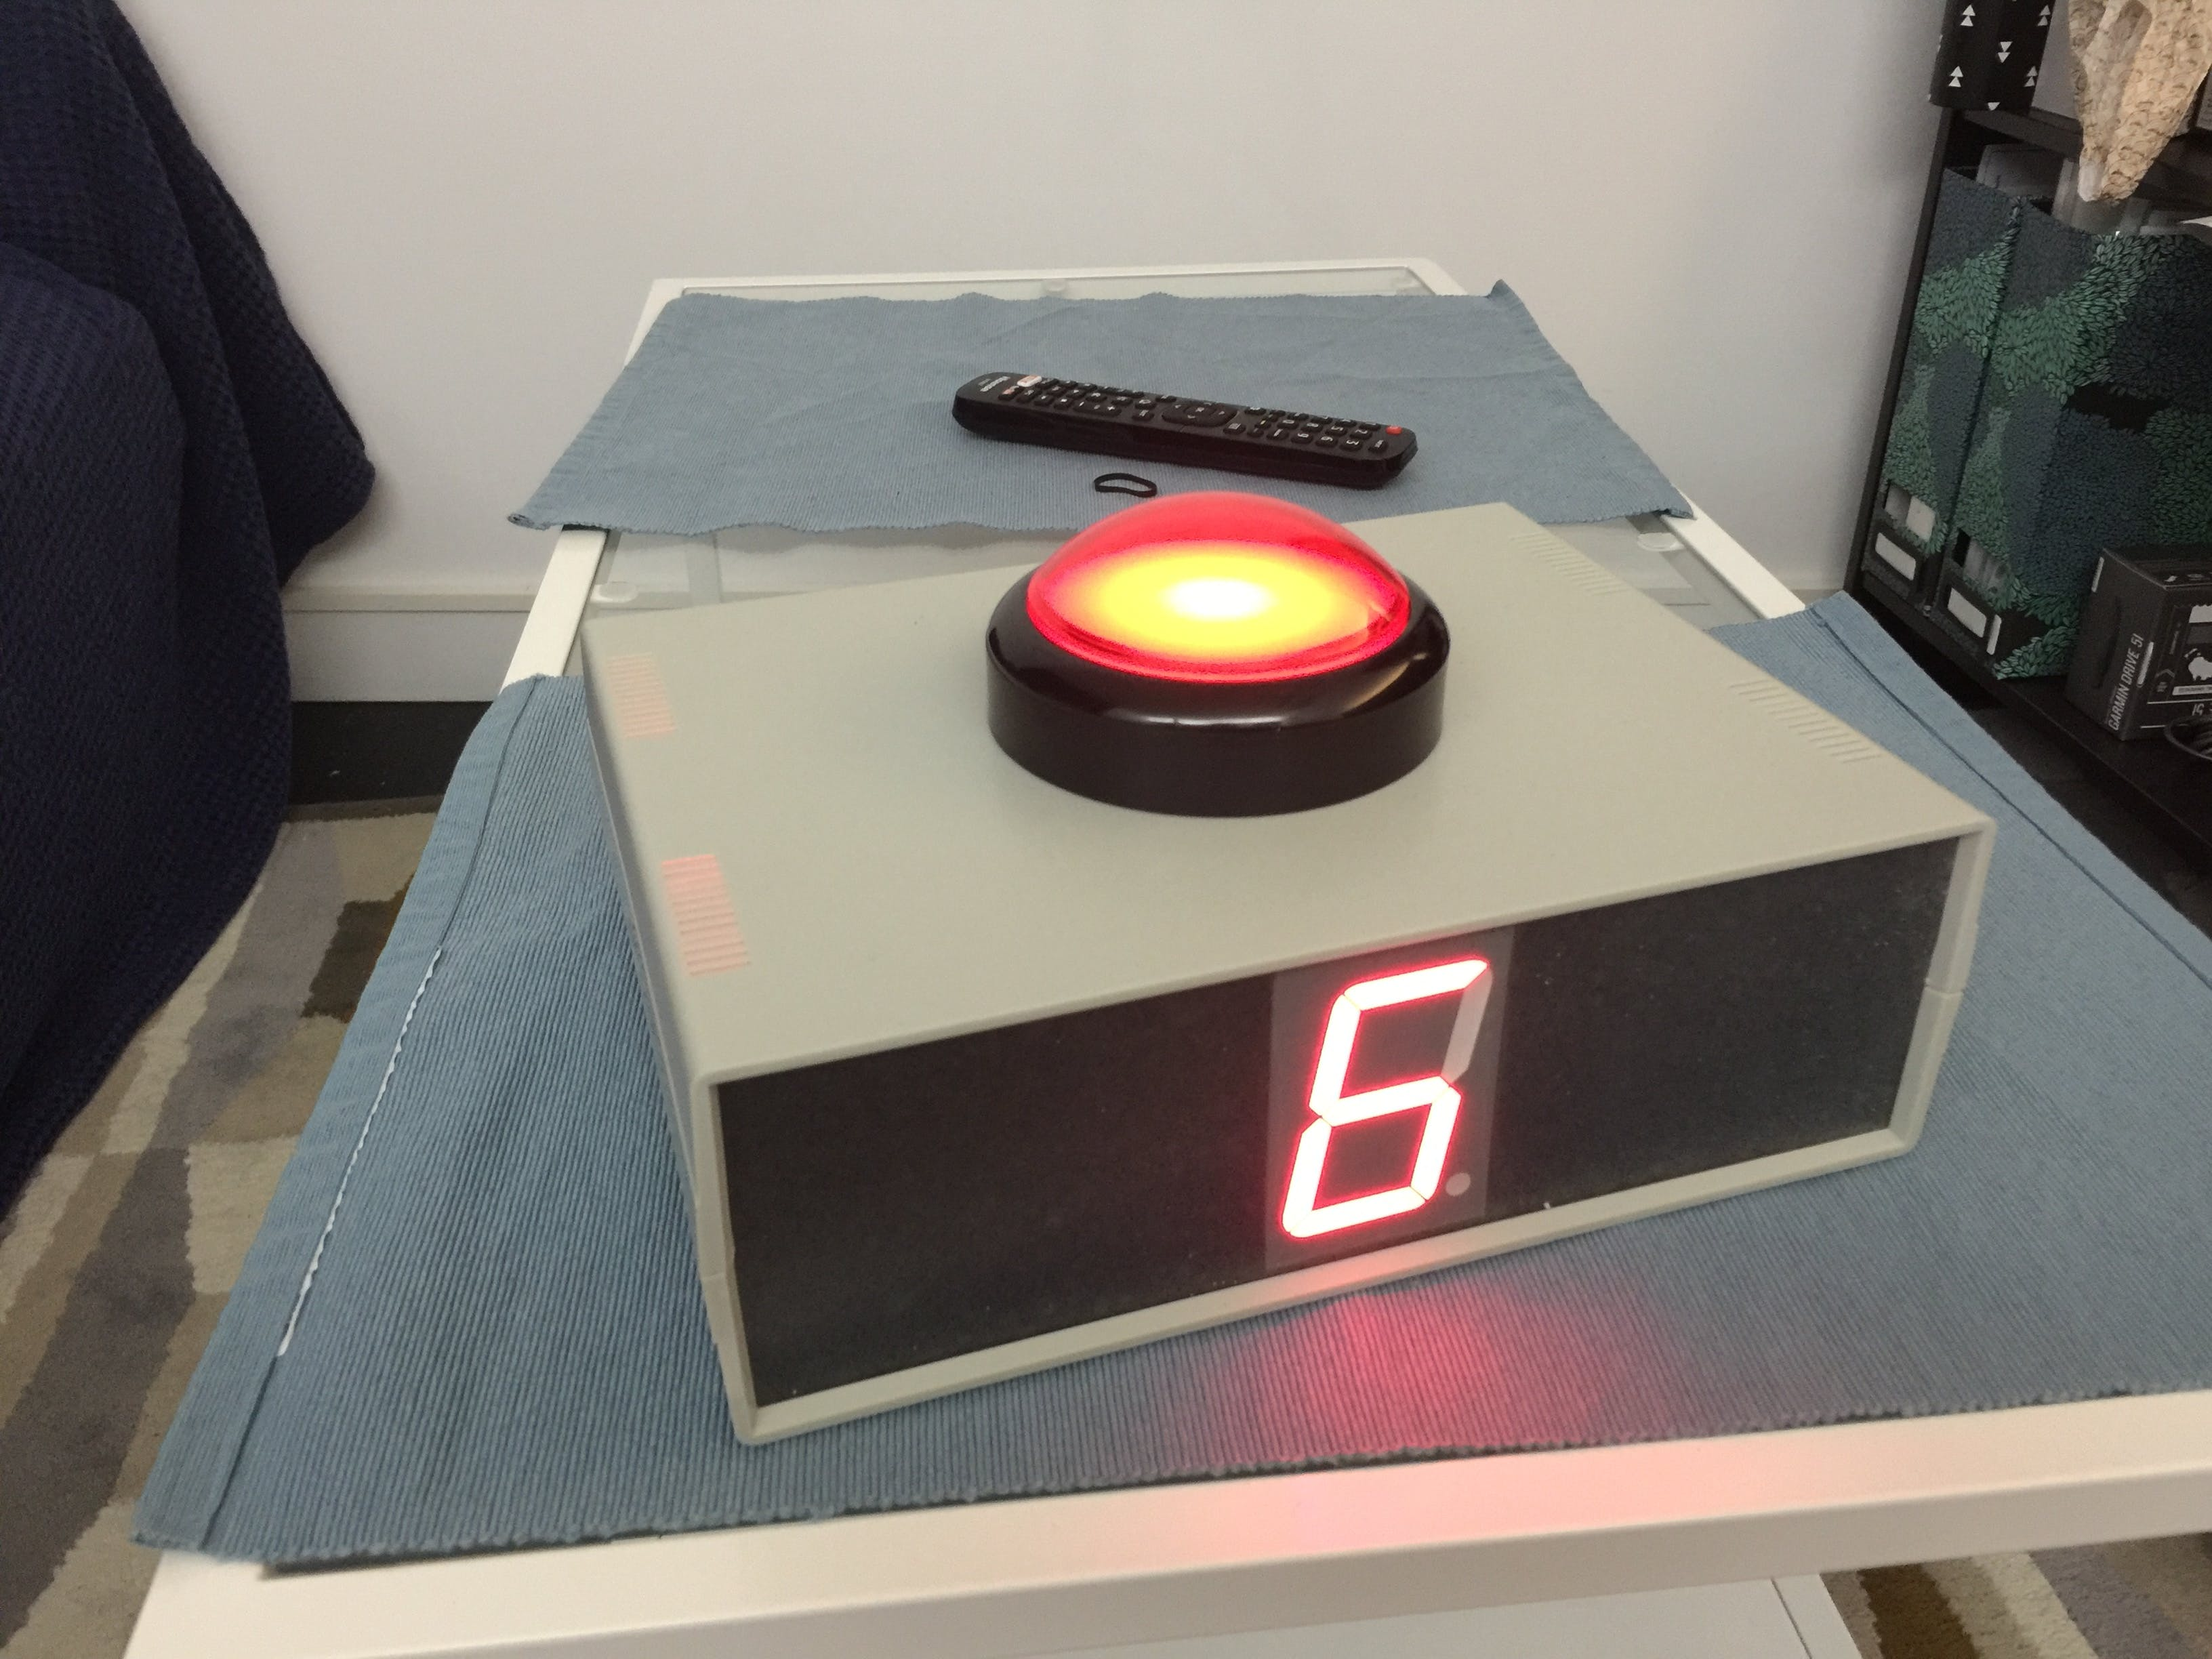 Completed Project (Front Panel View of 7-segment display & pushbutton)